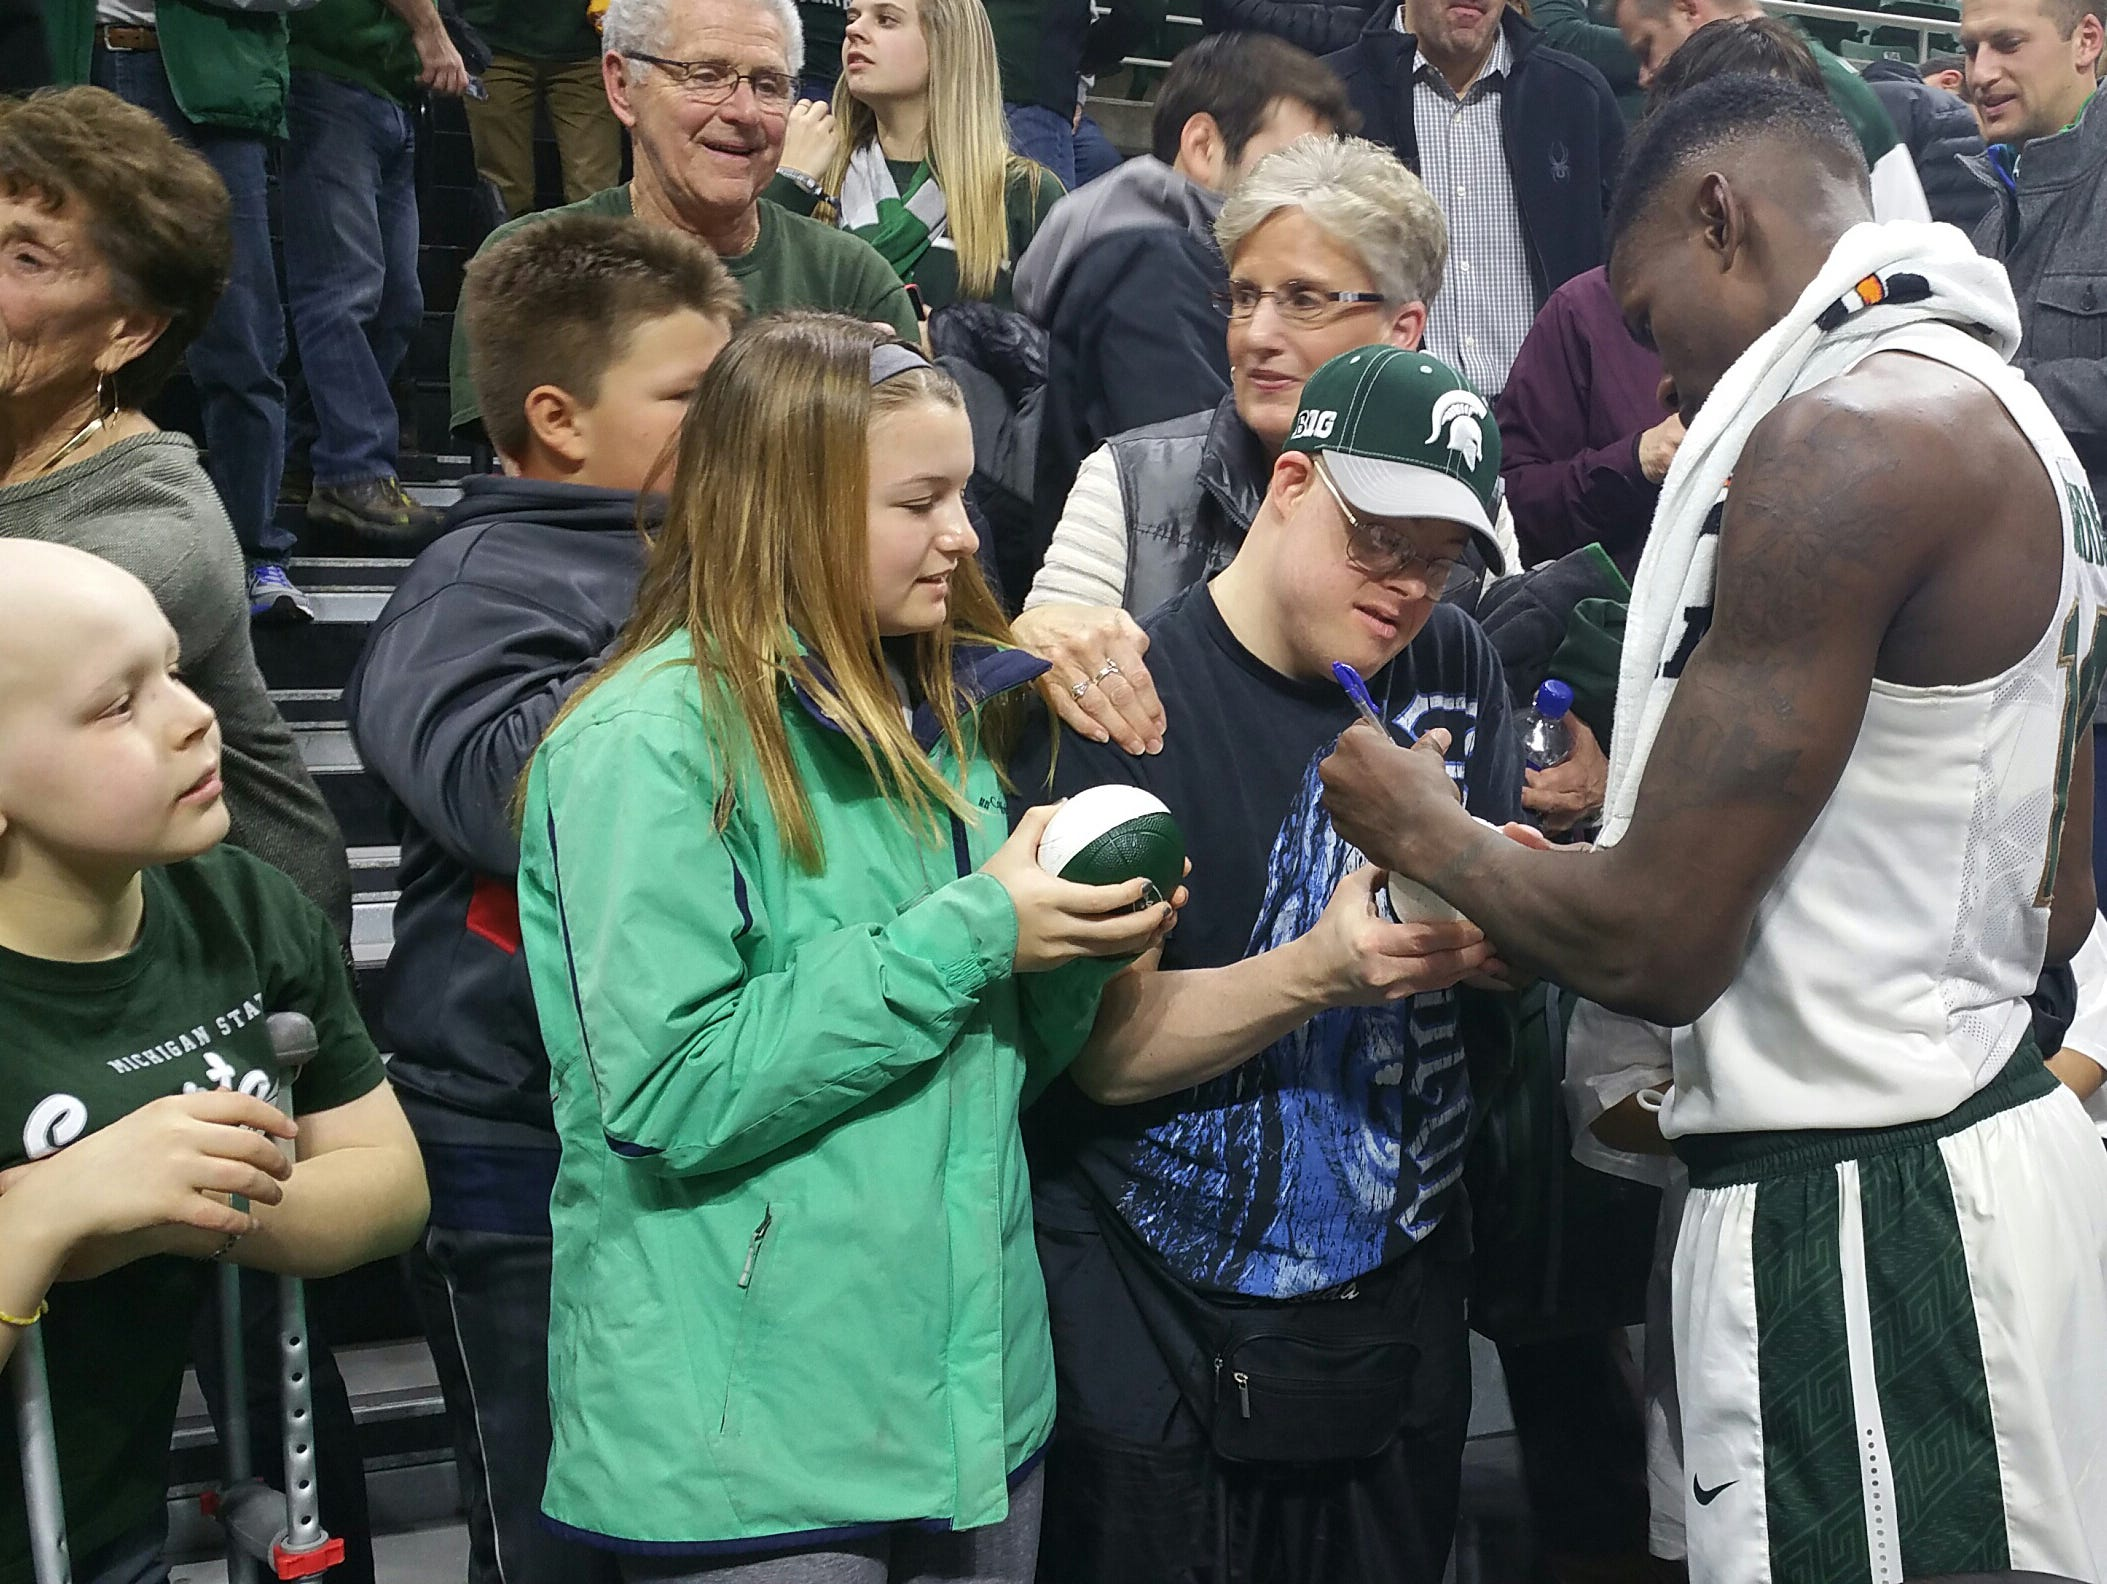 MacKale McGuire, far left, waits for MSU basketball player Matt Costello after Thursday's game. MSU guard Eron Harris is pictured at right.